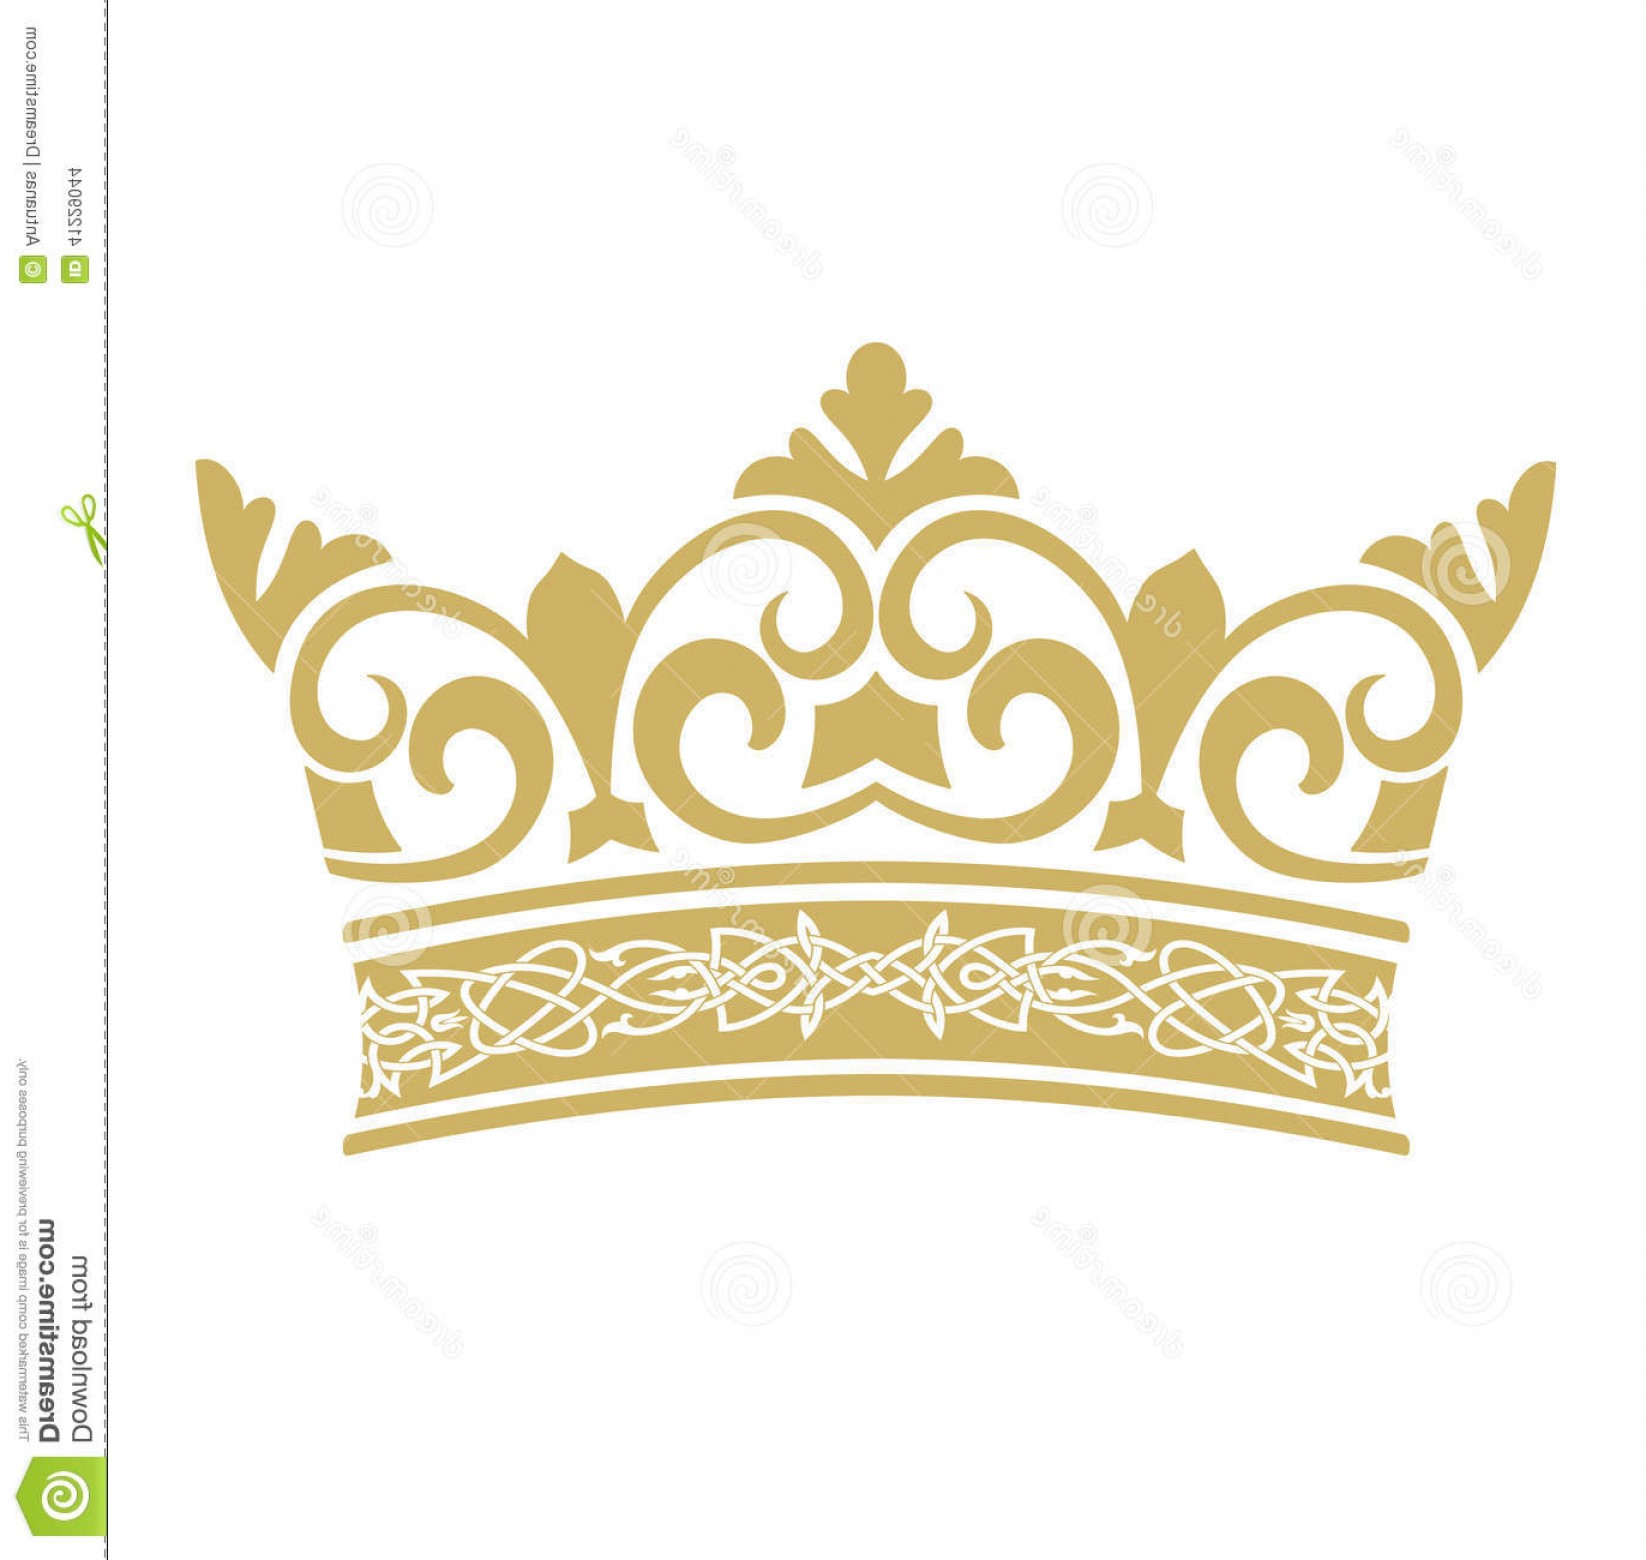 Crown Vector Clip Art: Stock Illustration Golden Crown Vectors Vector Format White Background Image